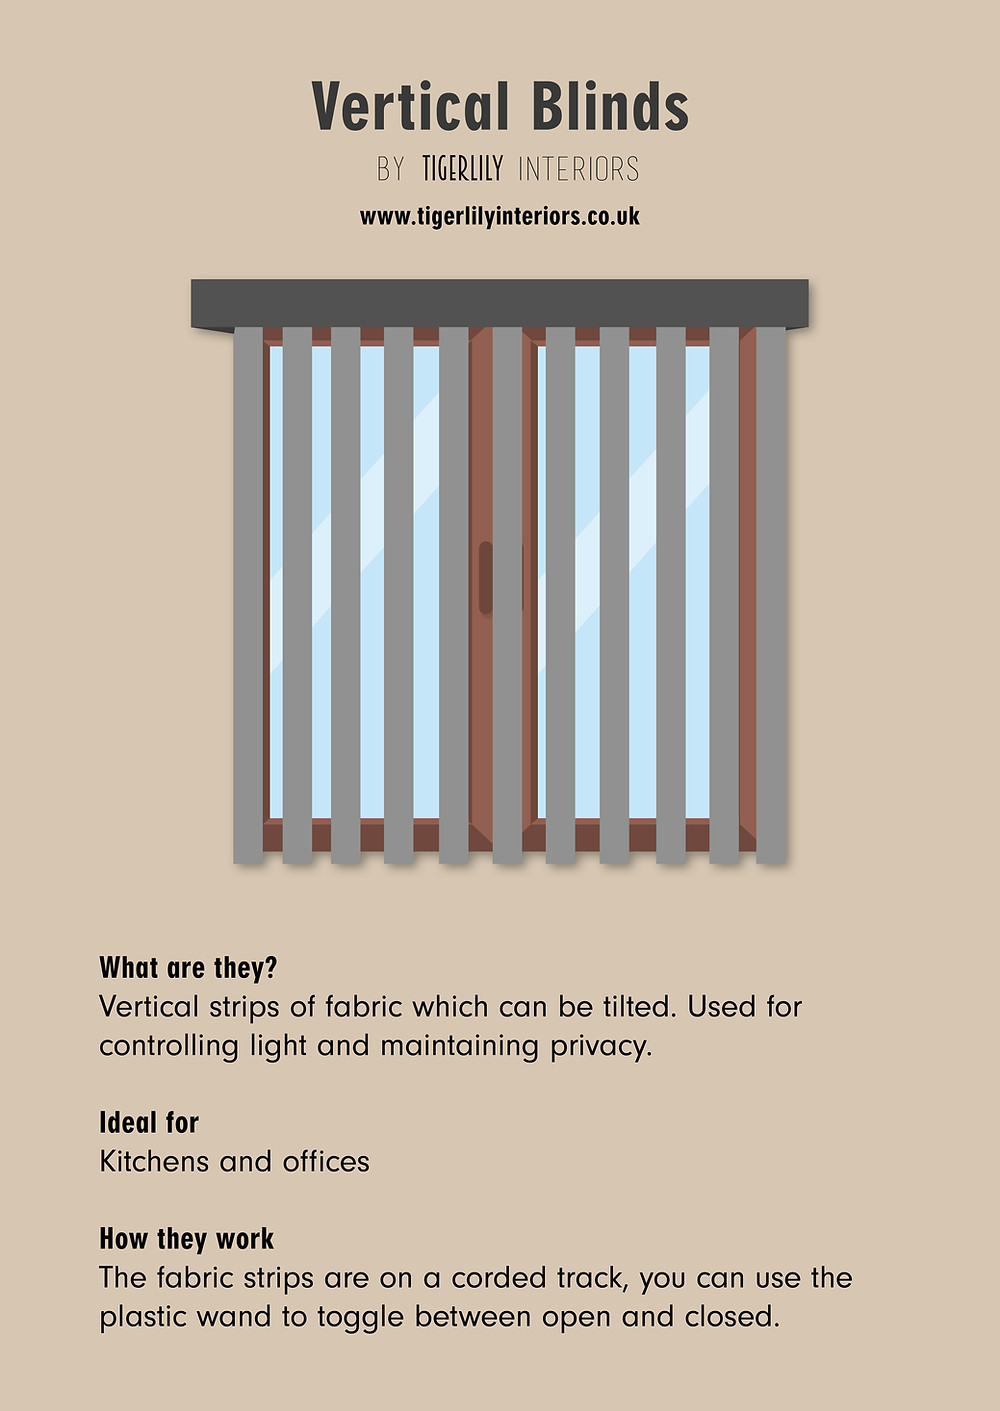 vertical blinds illustration. understanding blind types and window treatments